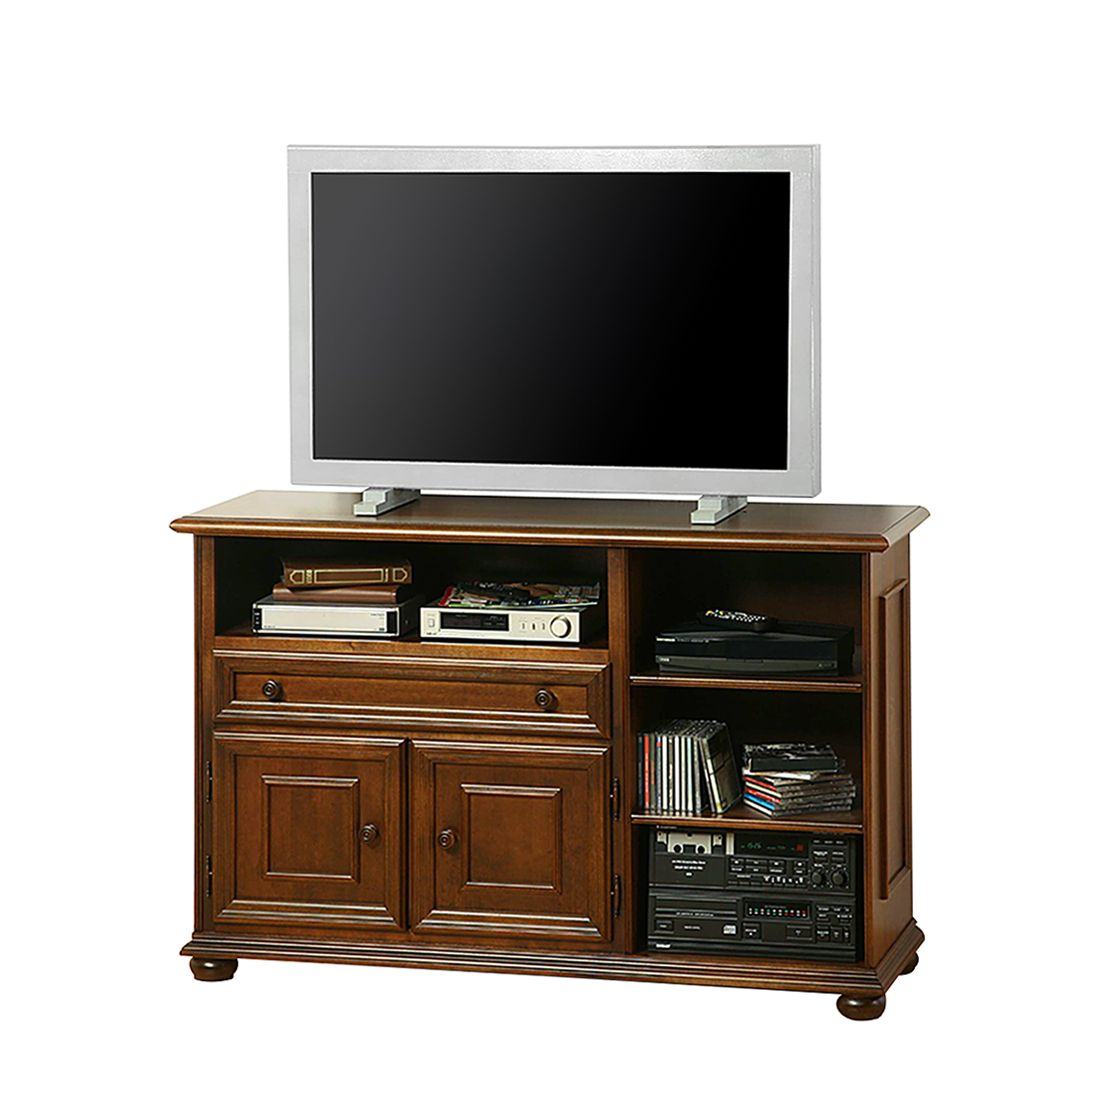 tv kommode arabella i tulpenbaum teilmassiv antik. Black Bedroom Furniture Sets. Home Design Ideas